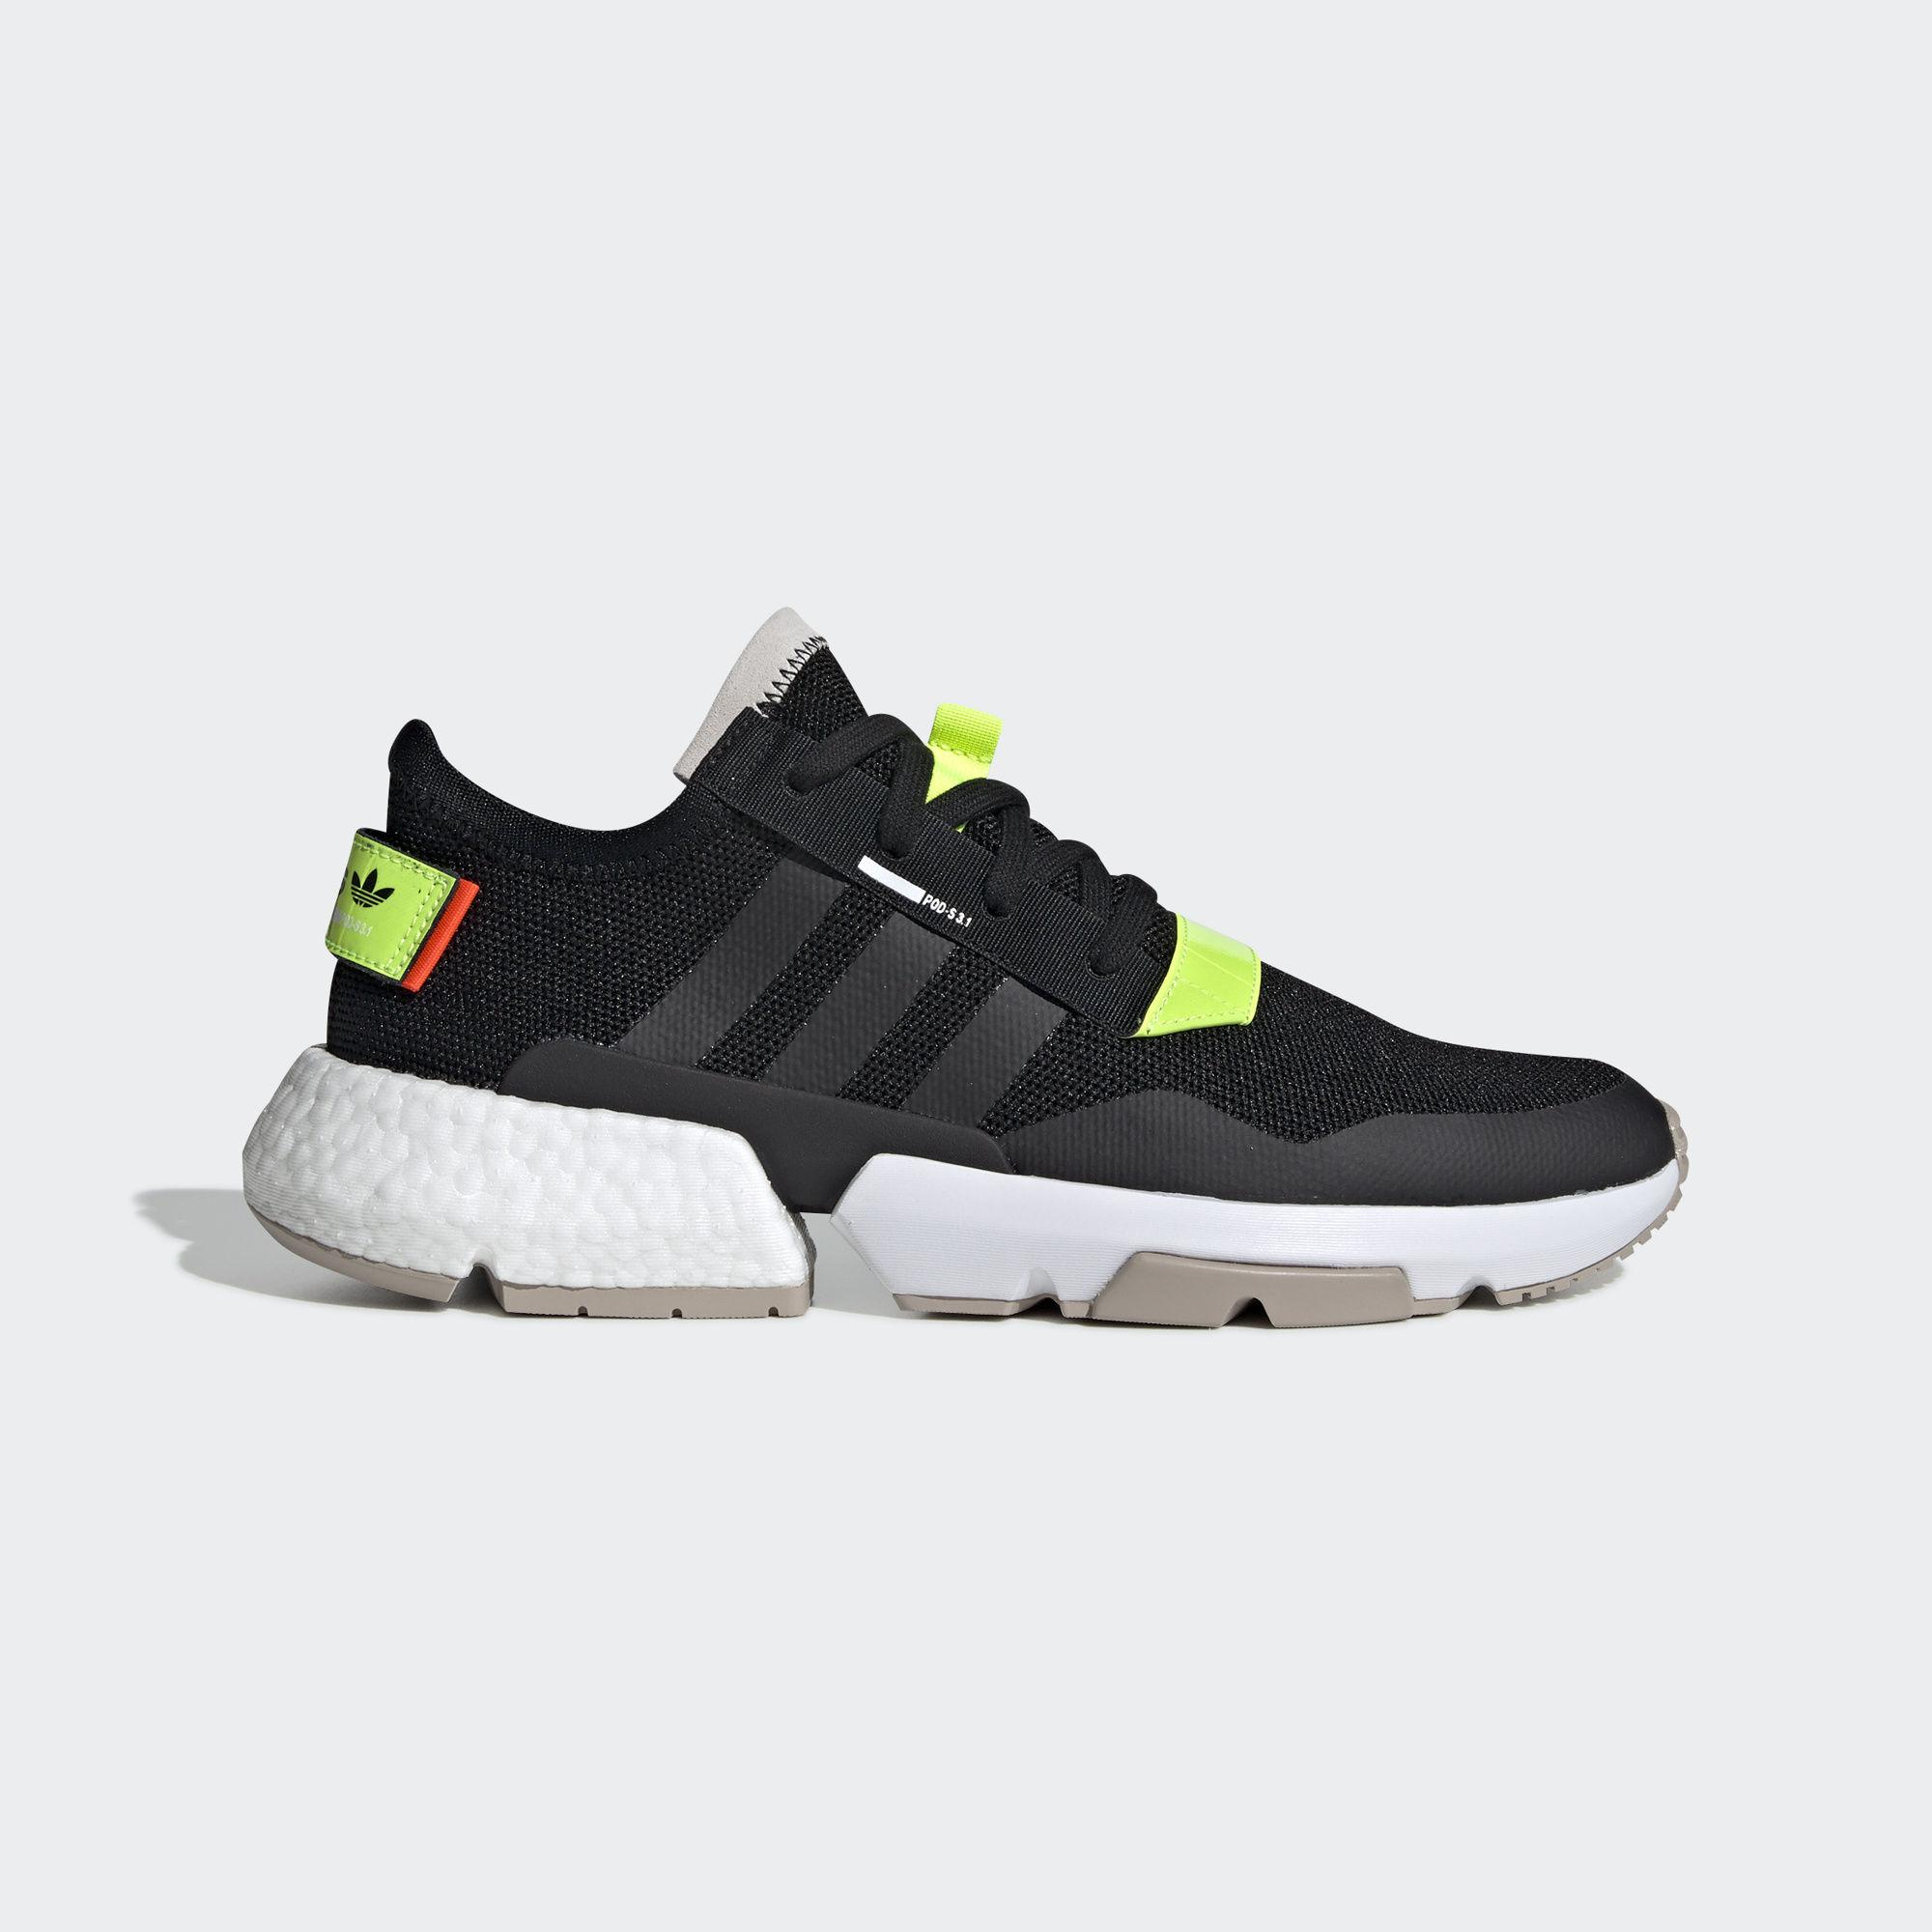 1eb1dd6306de0 adidas Originals. Men's Adidas Pod-s3.1 Core Black/ Solar Yellow/ Ftw White